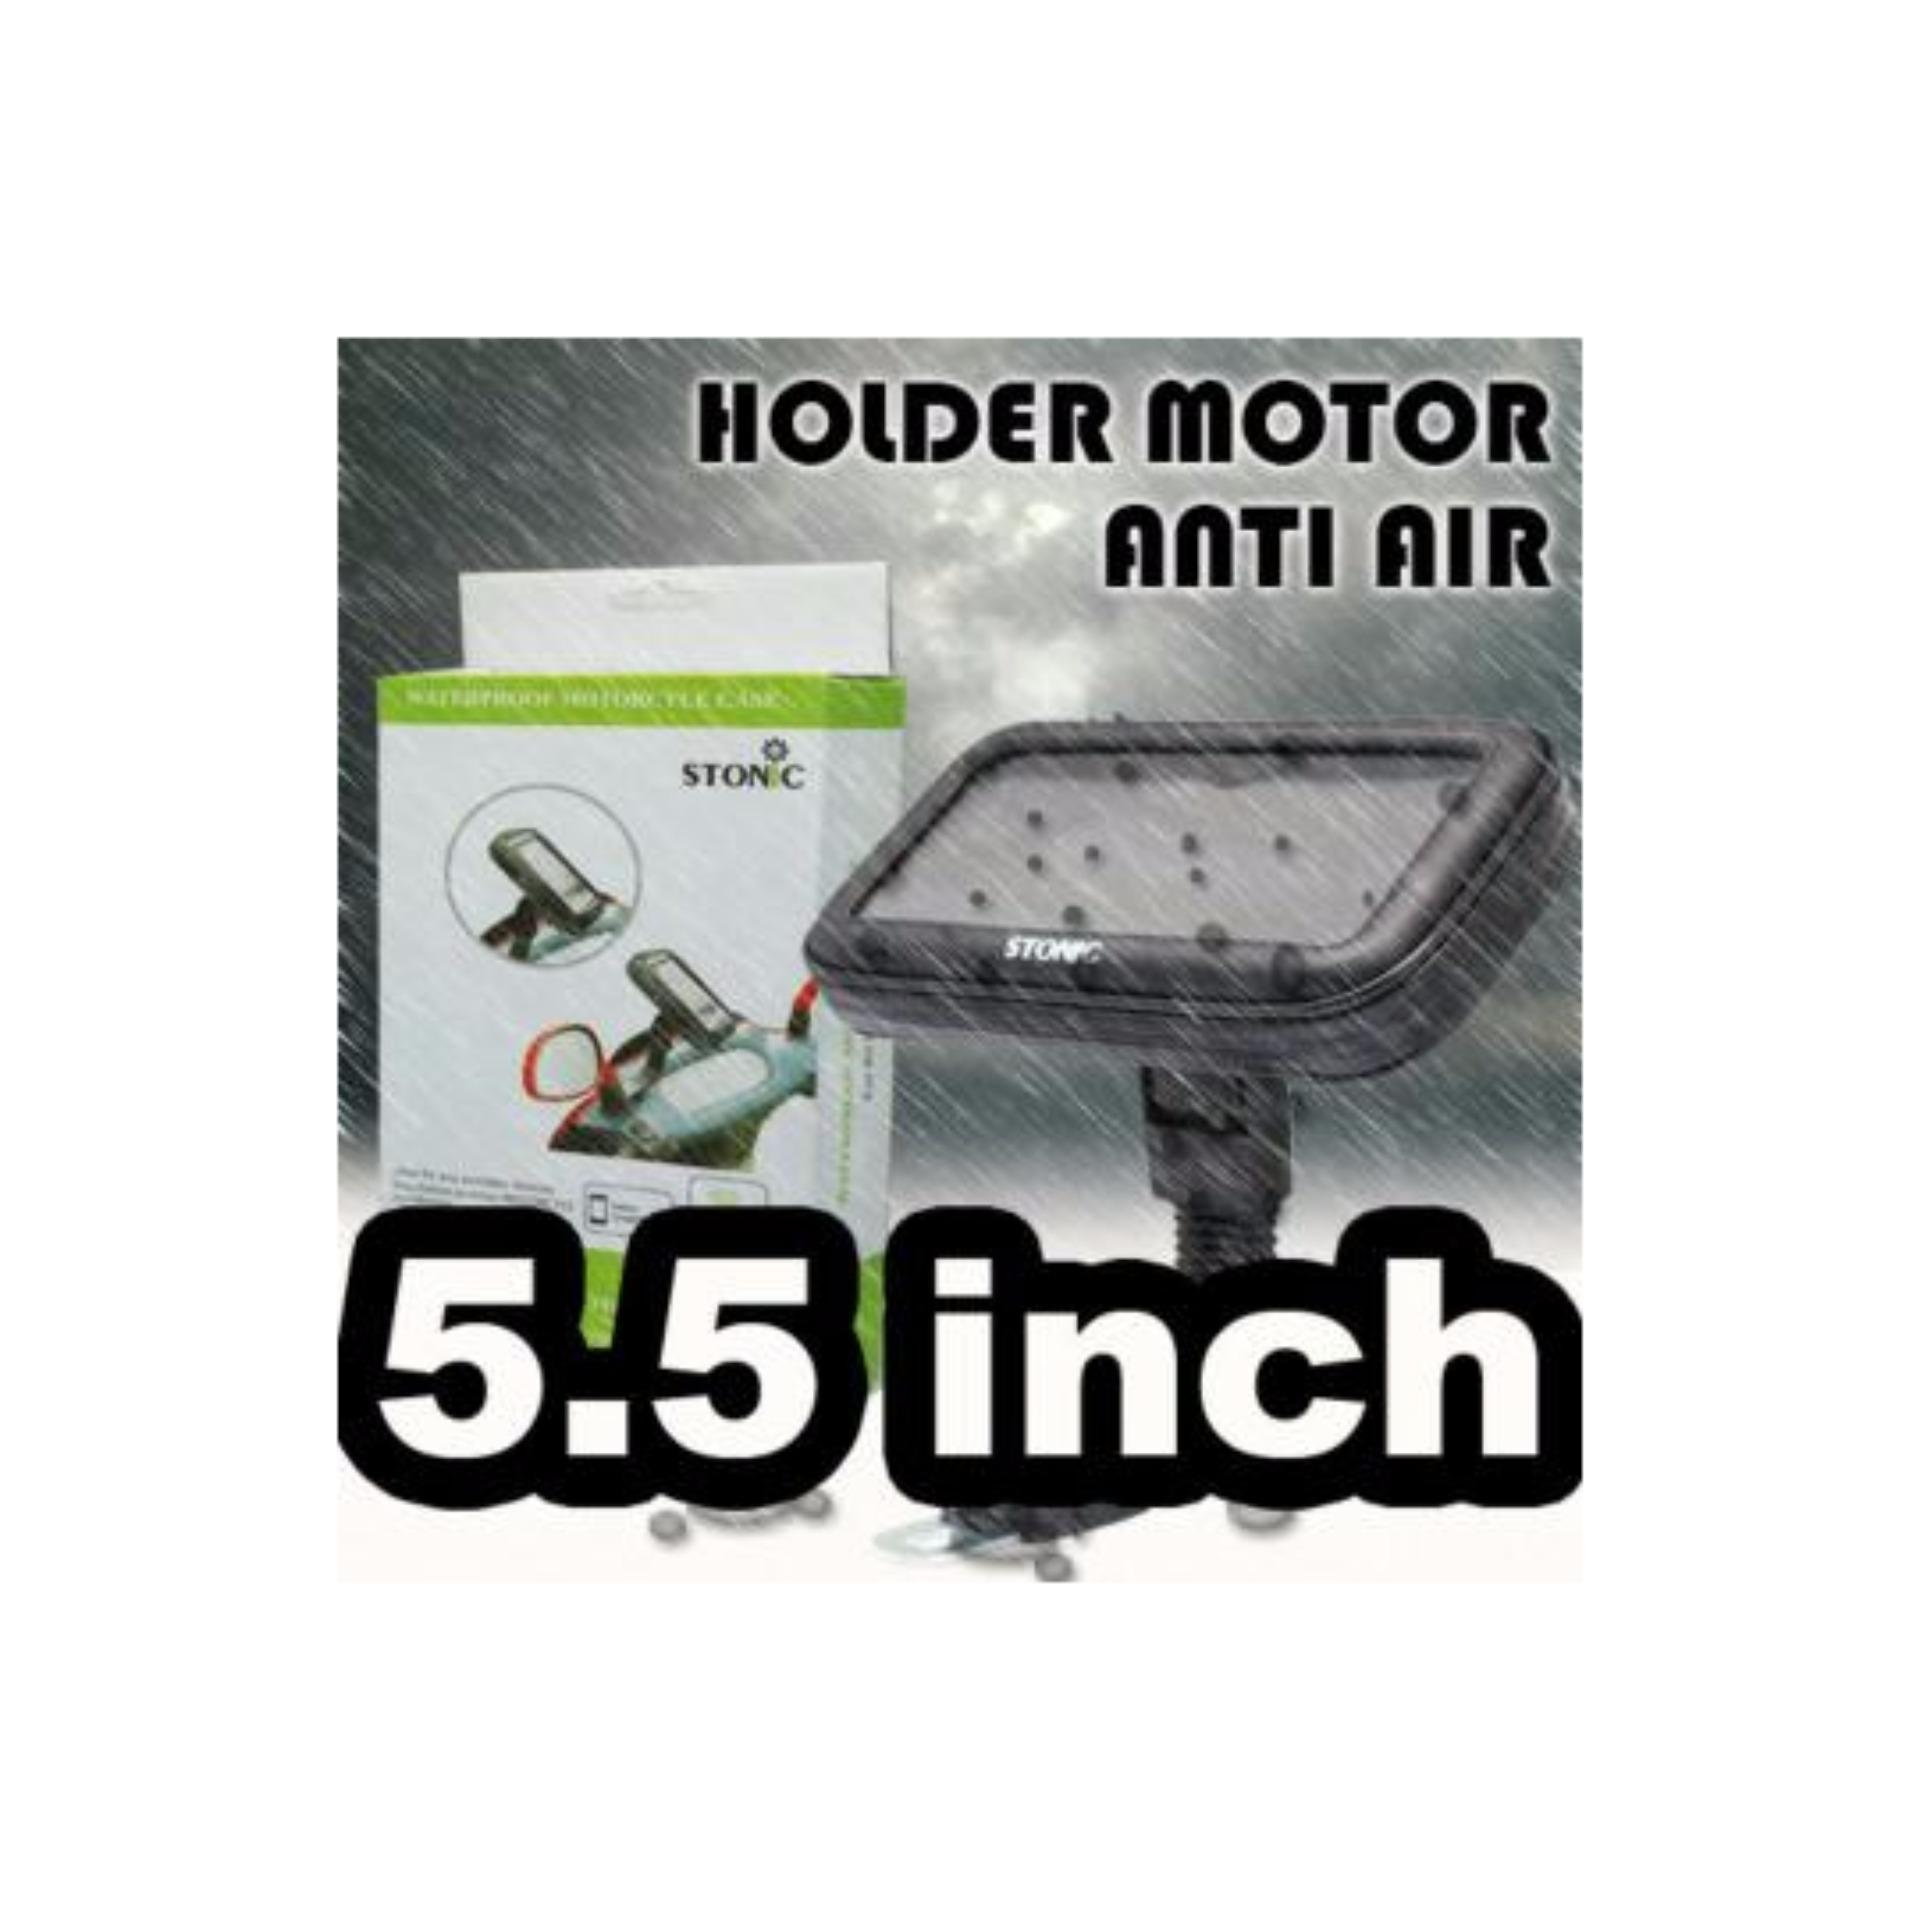 ... Waterproof Motorcycle Case Stonic. Holder Spion Sepeda MotorWarerproof Bracket HP GPS Anti Air ...